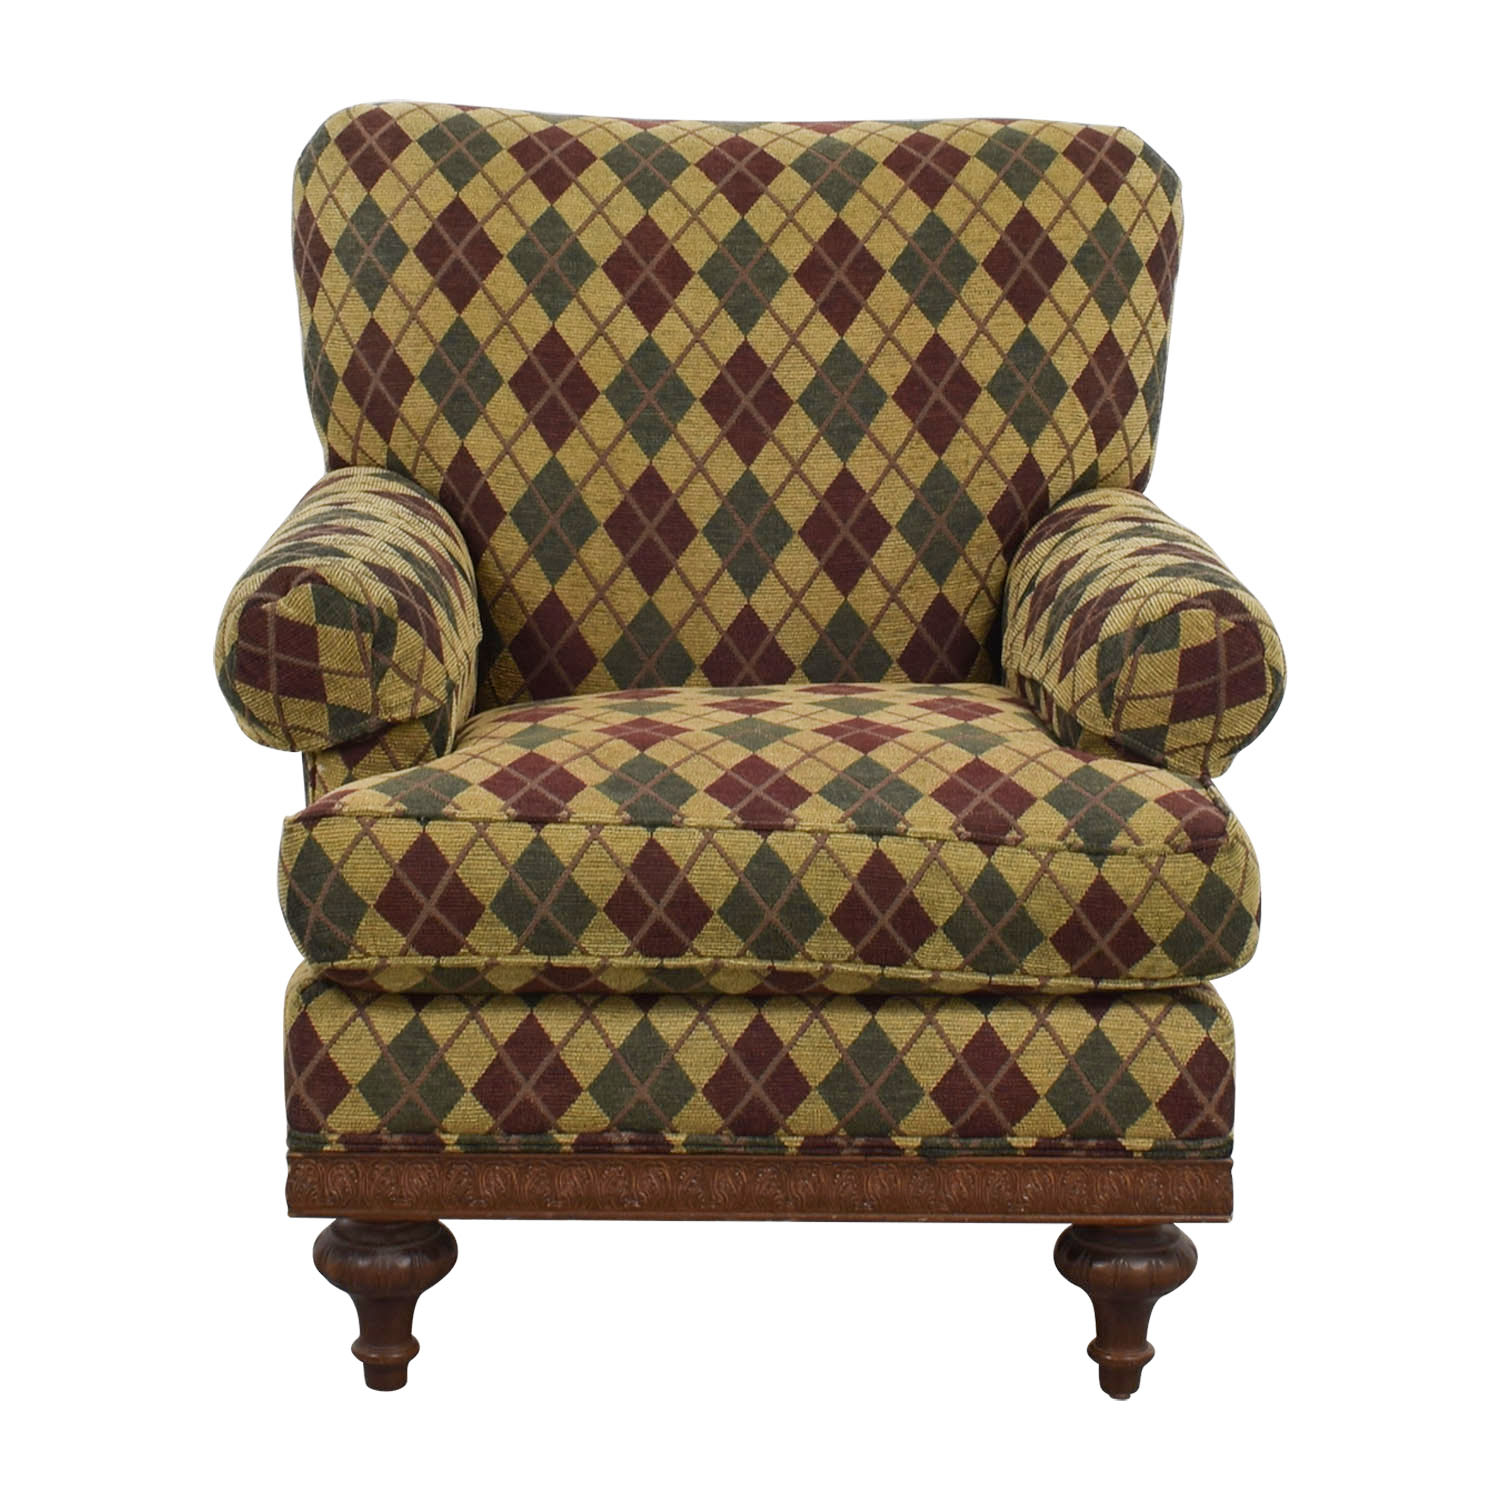 Upholstered Arm Chairs 80 Off Domain Home Argyle Upholstered Arm Chair Chairs